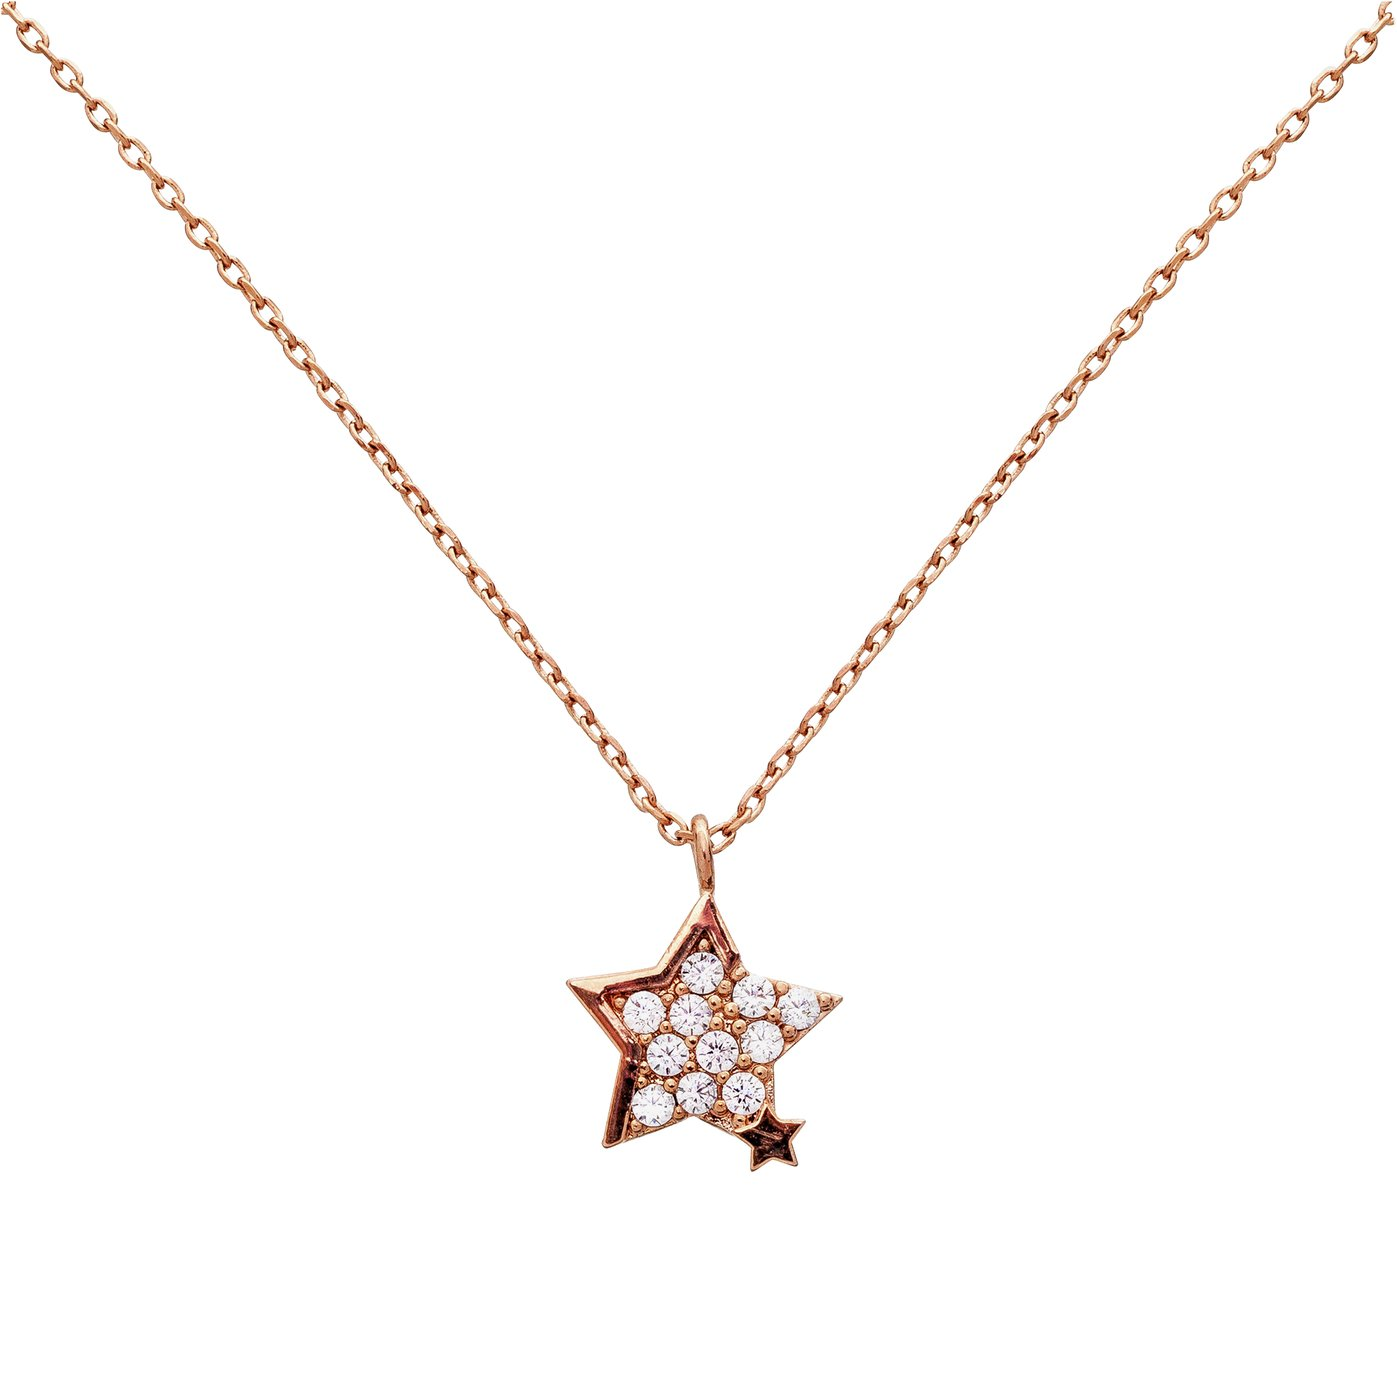 Image of Ameilia Grace Rose Gold Colour Cubic Zirconia Star Necklace